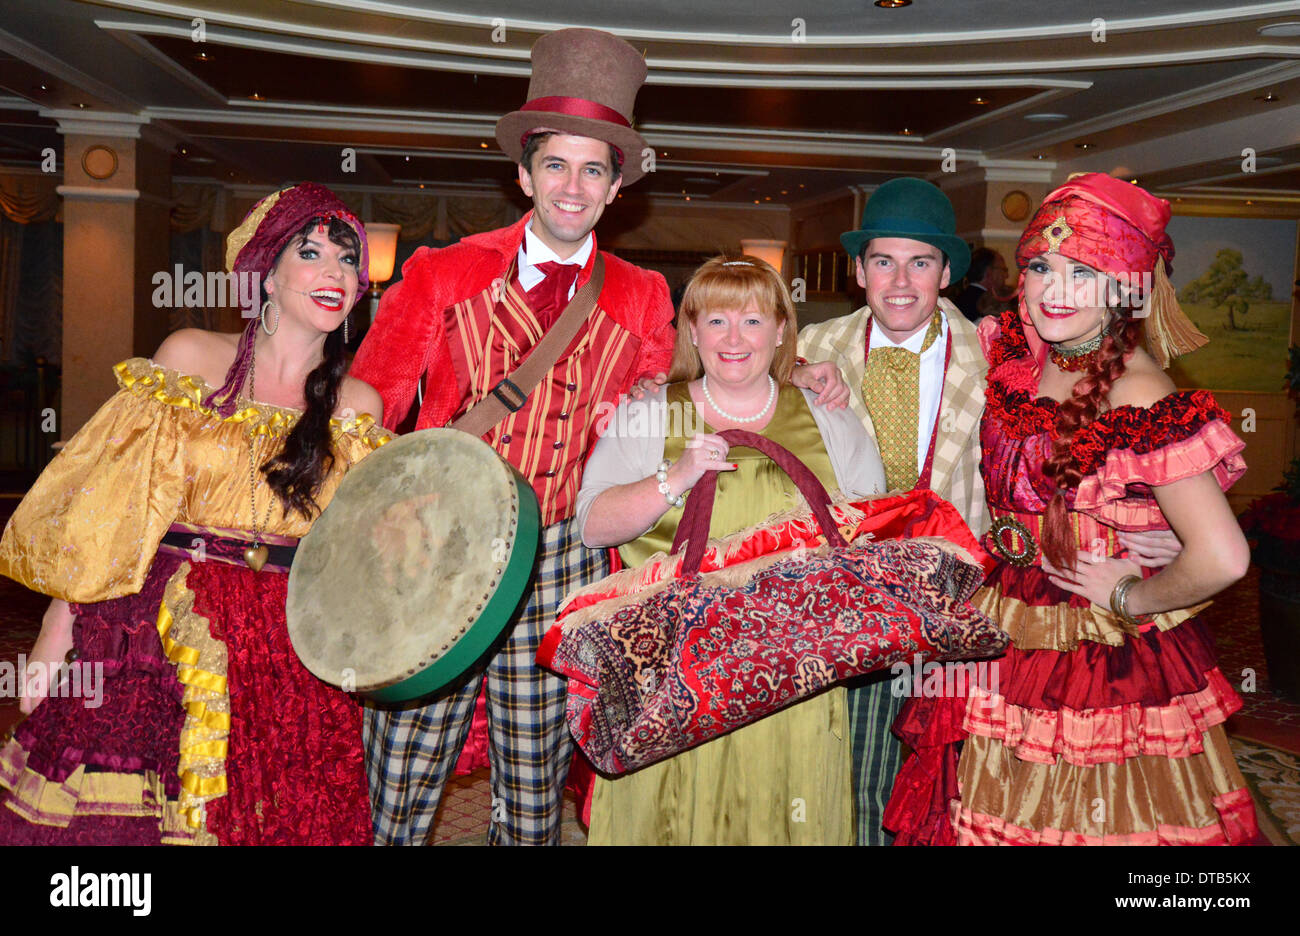 Victorian musical entertainers with passenger on-board Cunard 'Queen Victoria' cruise ship, Mediterranean Sea, Europe - Stock Image